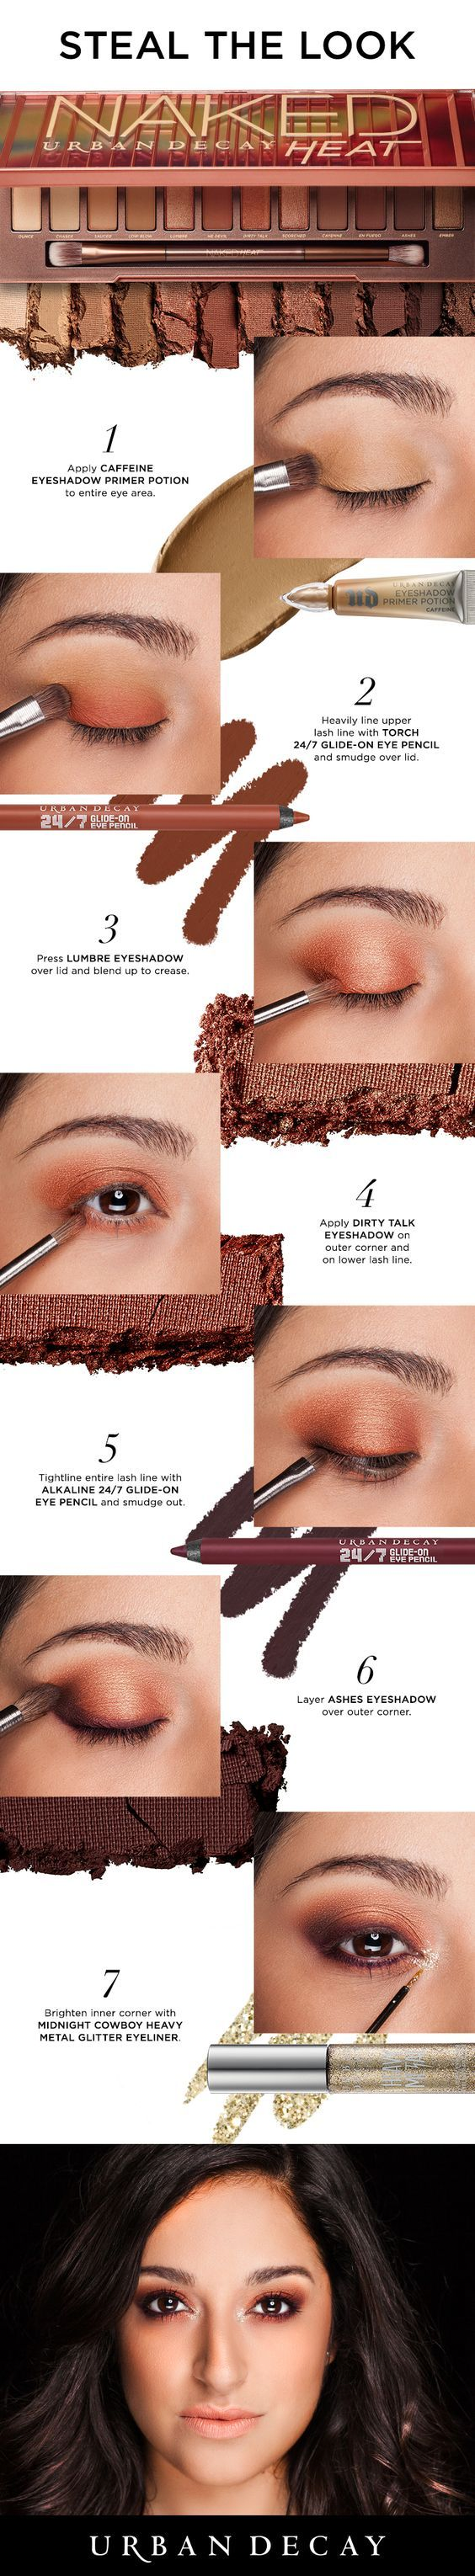 Smoke it out with the new Urban Decay Naked Heat Palette! Achieve this look in just 7 easy steps. #NakedHeat